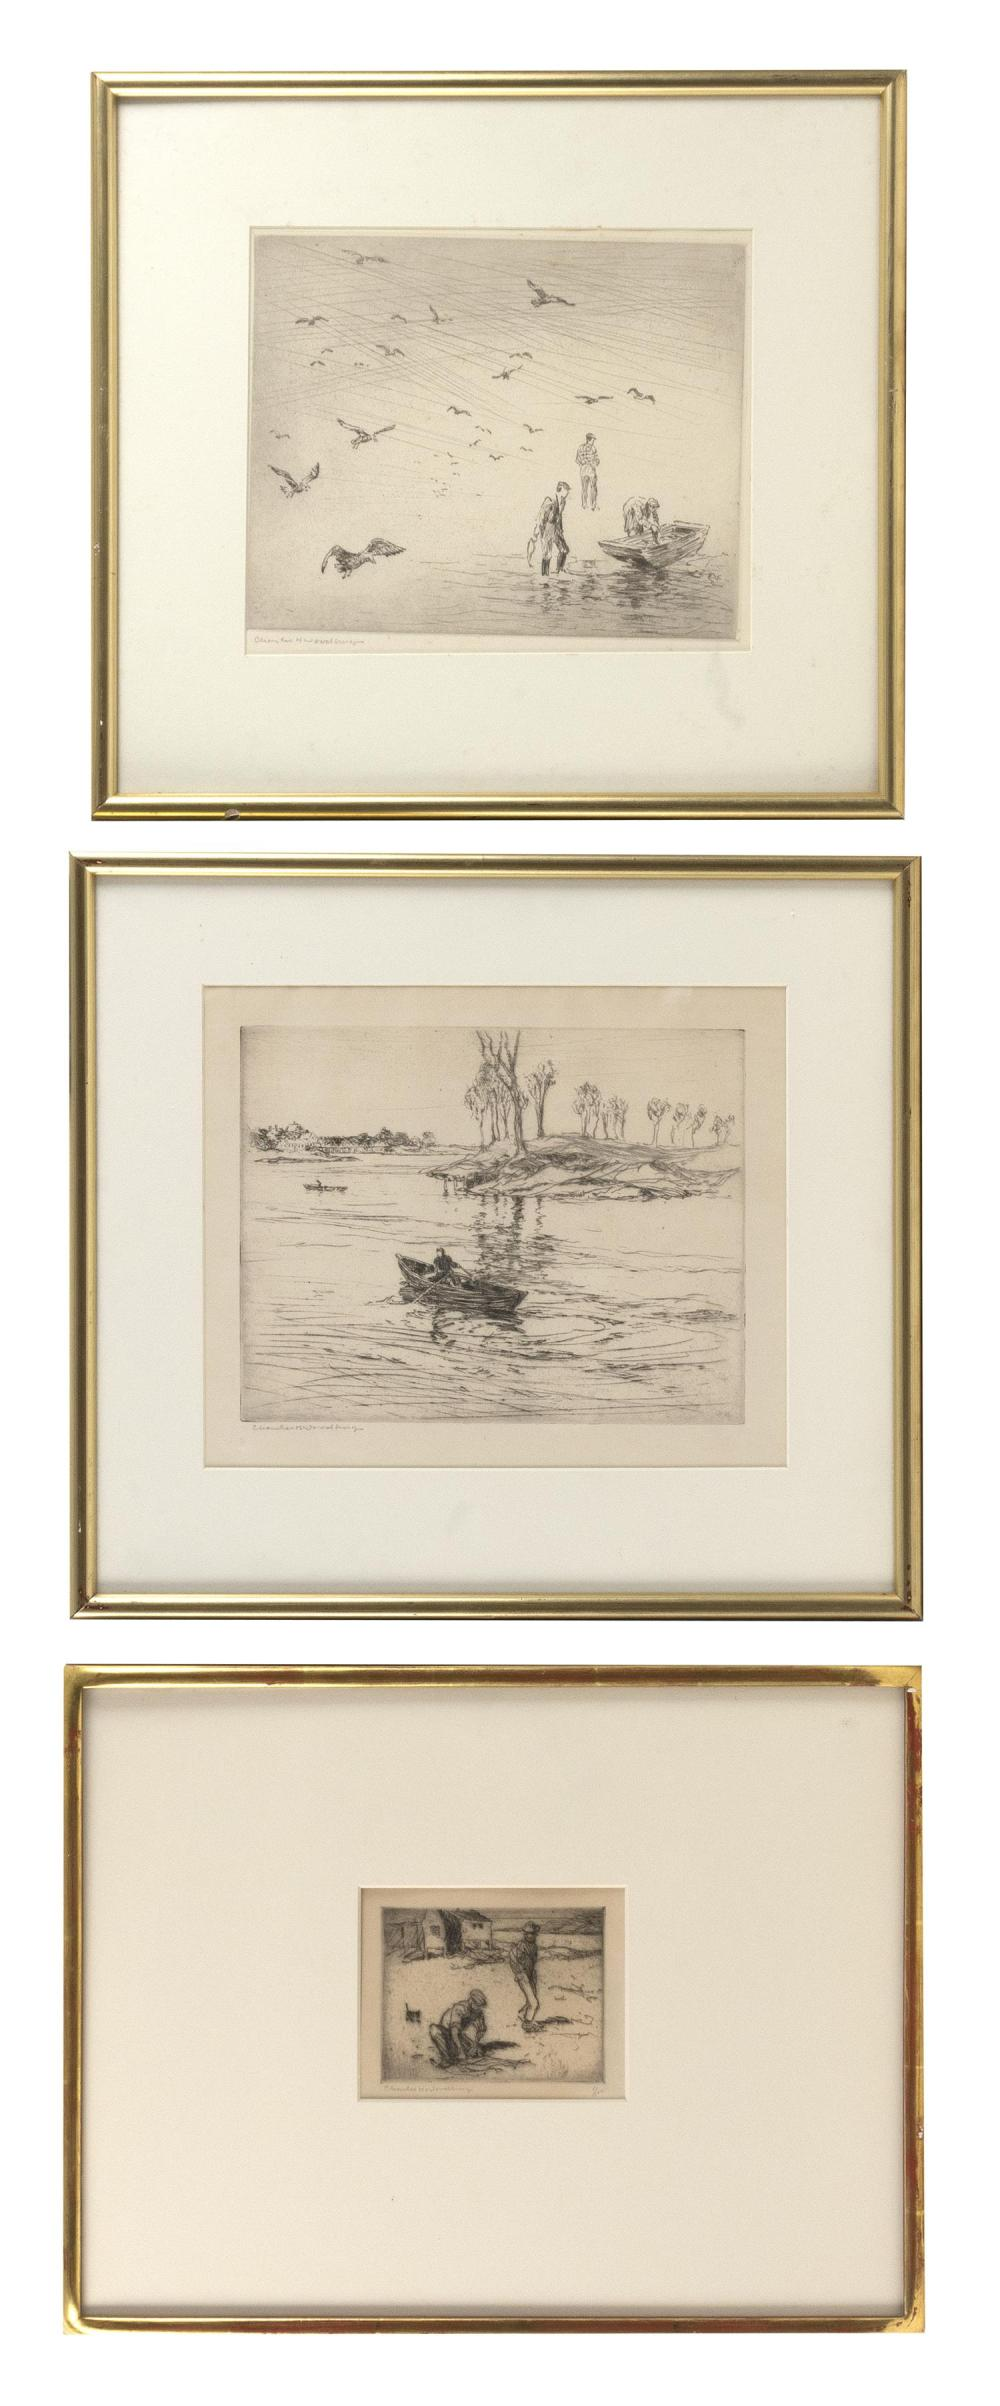 "CHARLES H. WOODBURY, Massachusetts/Maine, 1864-1940, Three sporting scenes., Drypoint etchings on paper, 10.75"" x 12.5"", 9.25"" x 10...."